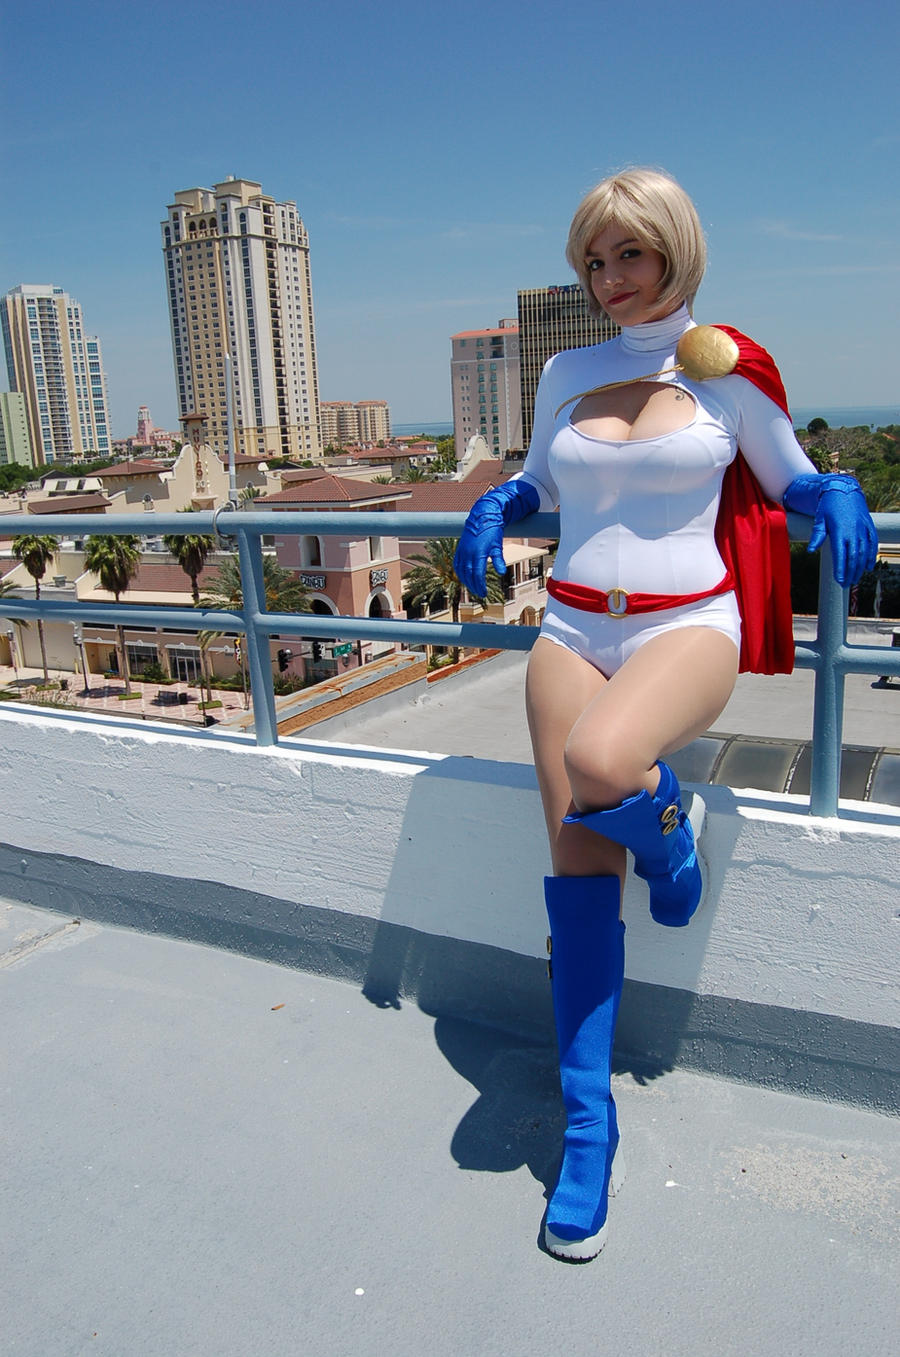 Power Girl: A Moment's Rest by KingdomOfSeven